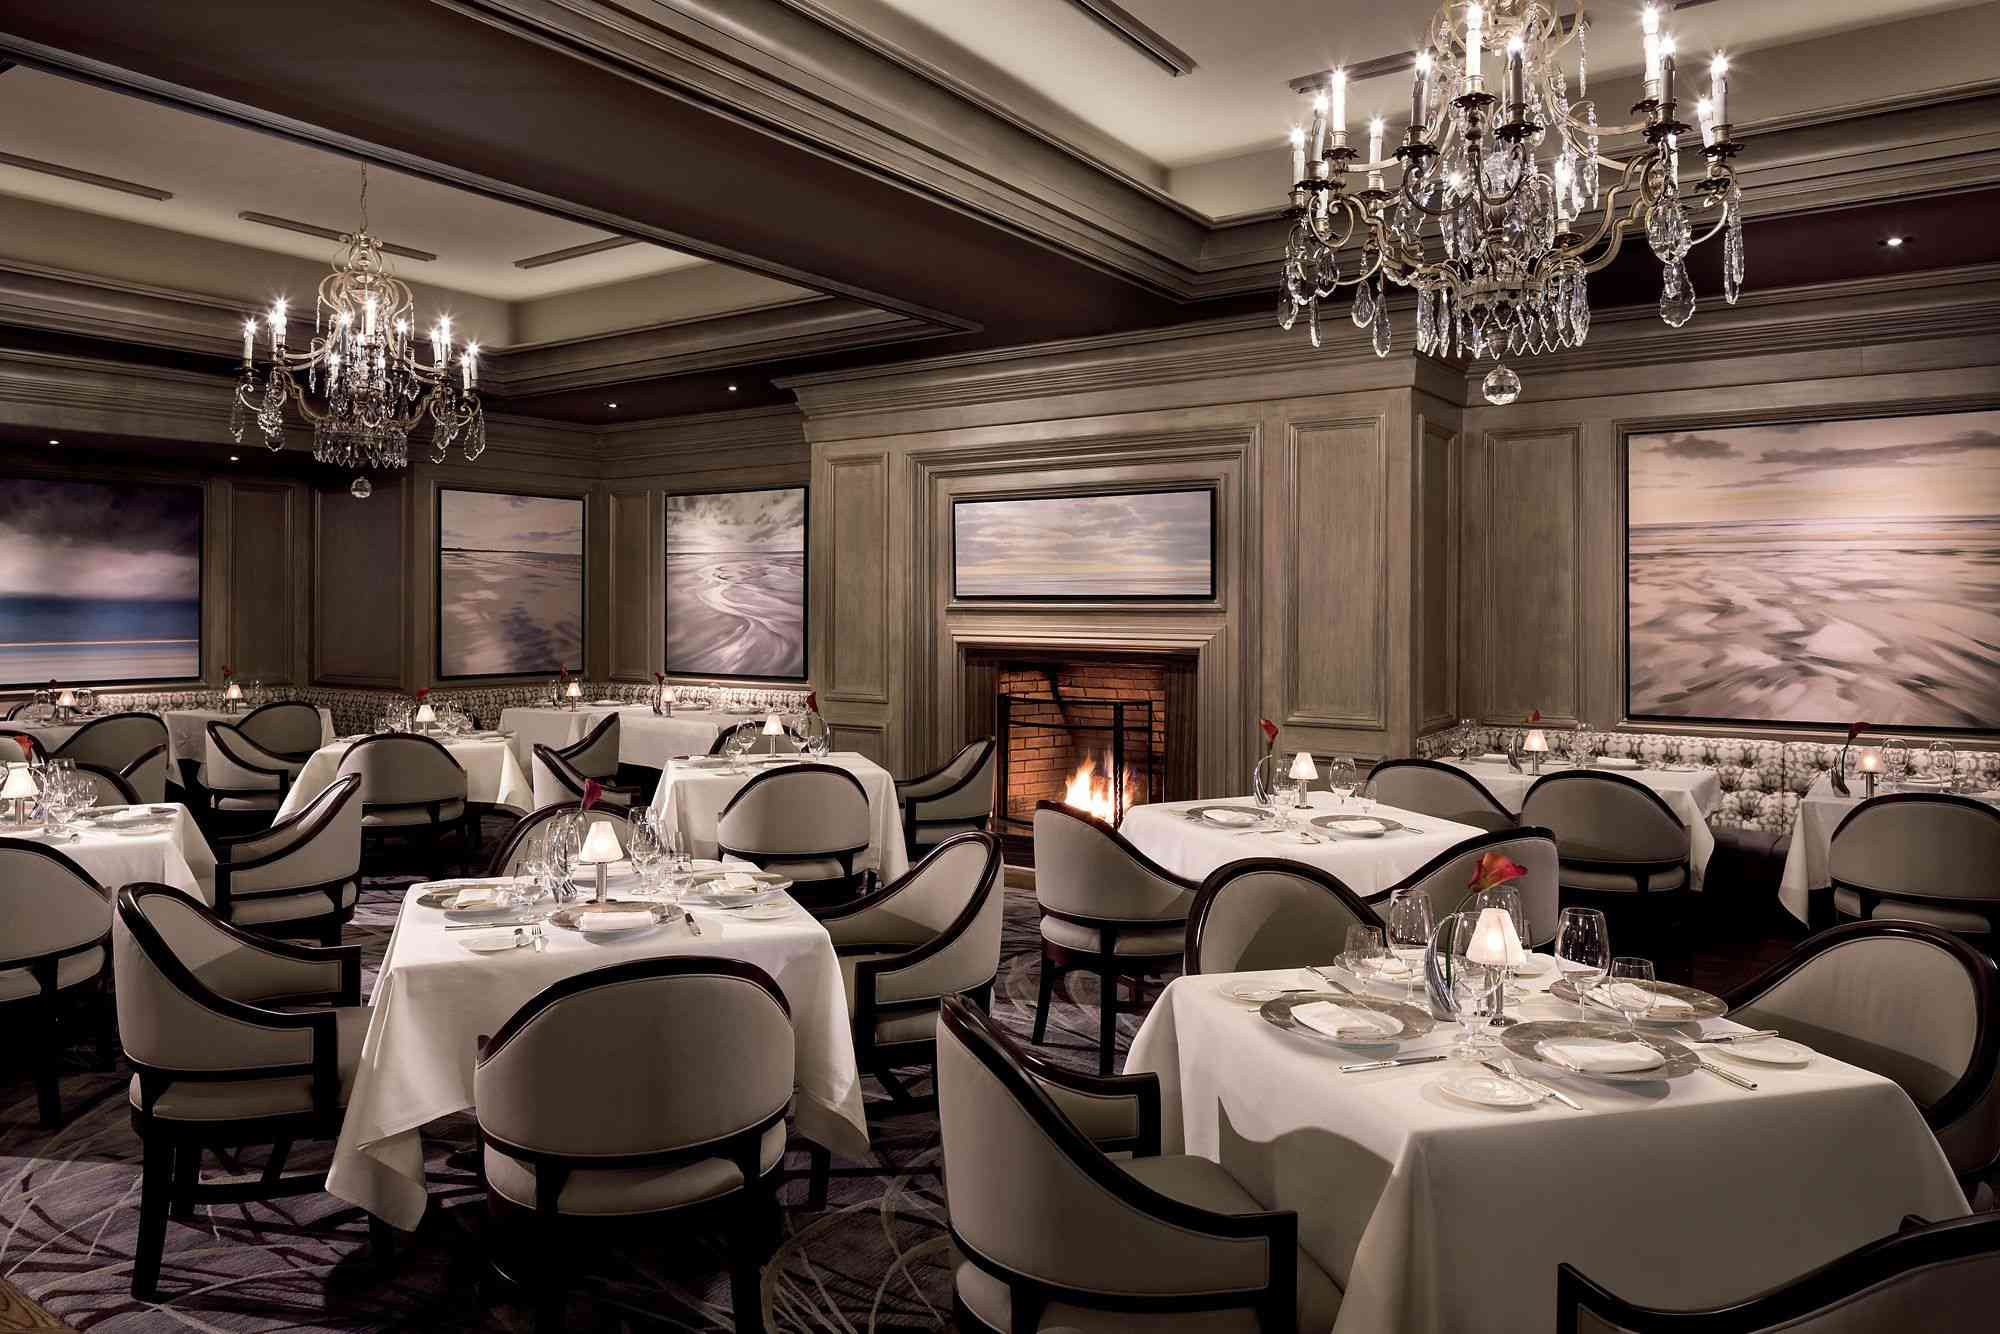 The Grille and the Restaurant at the Ritz-Carlton